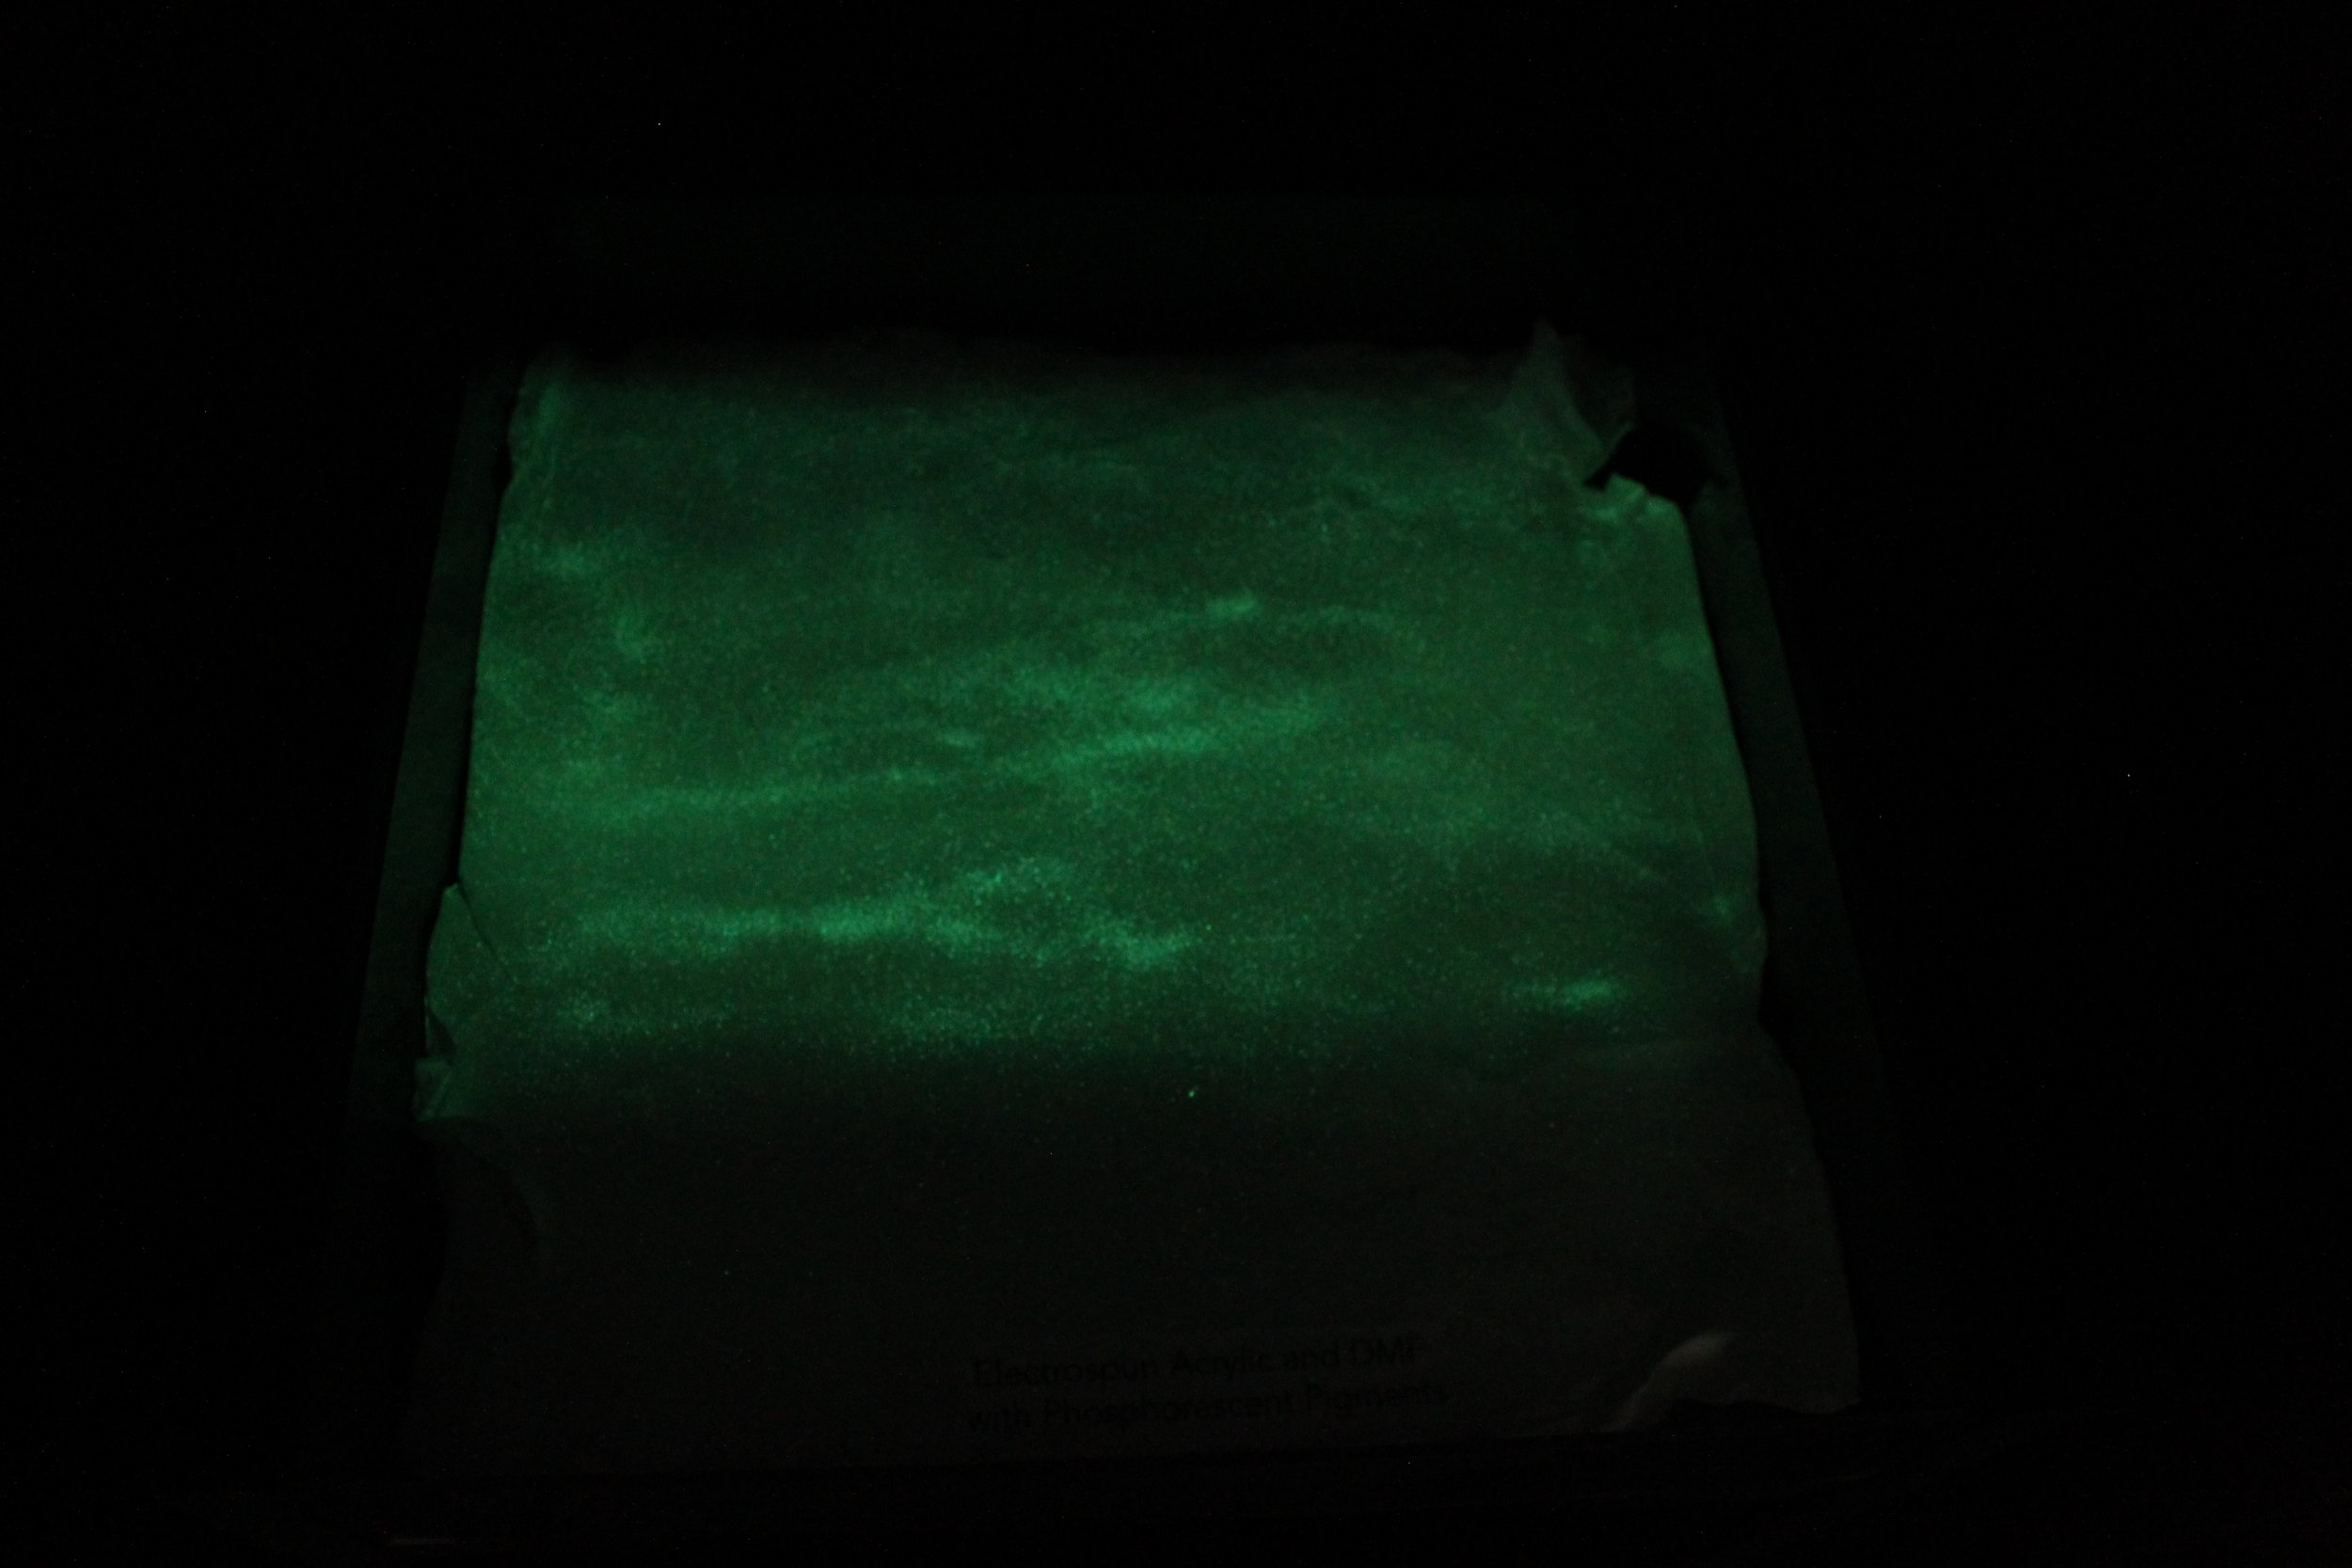 electrospun fabric after UV light is removed